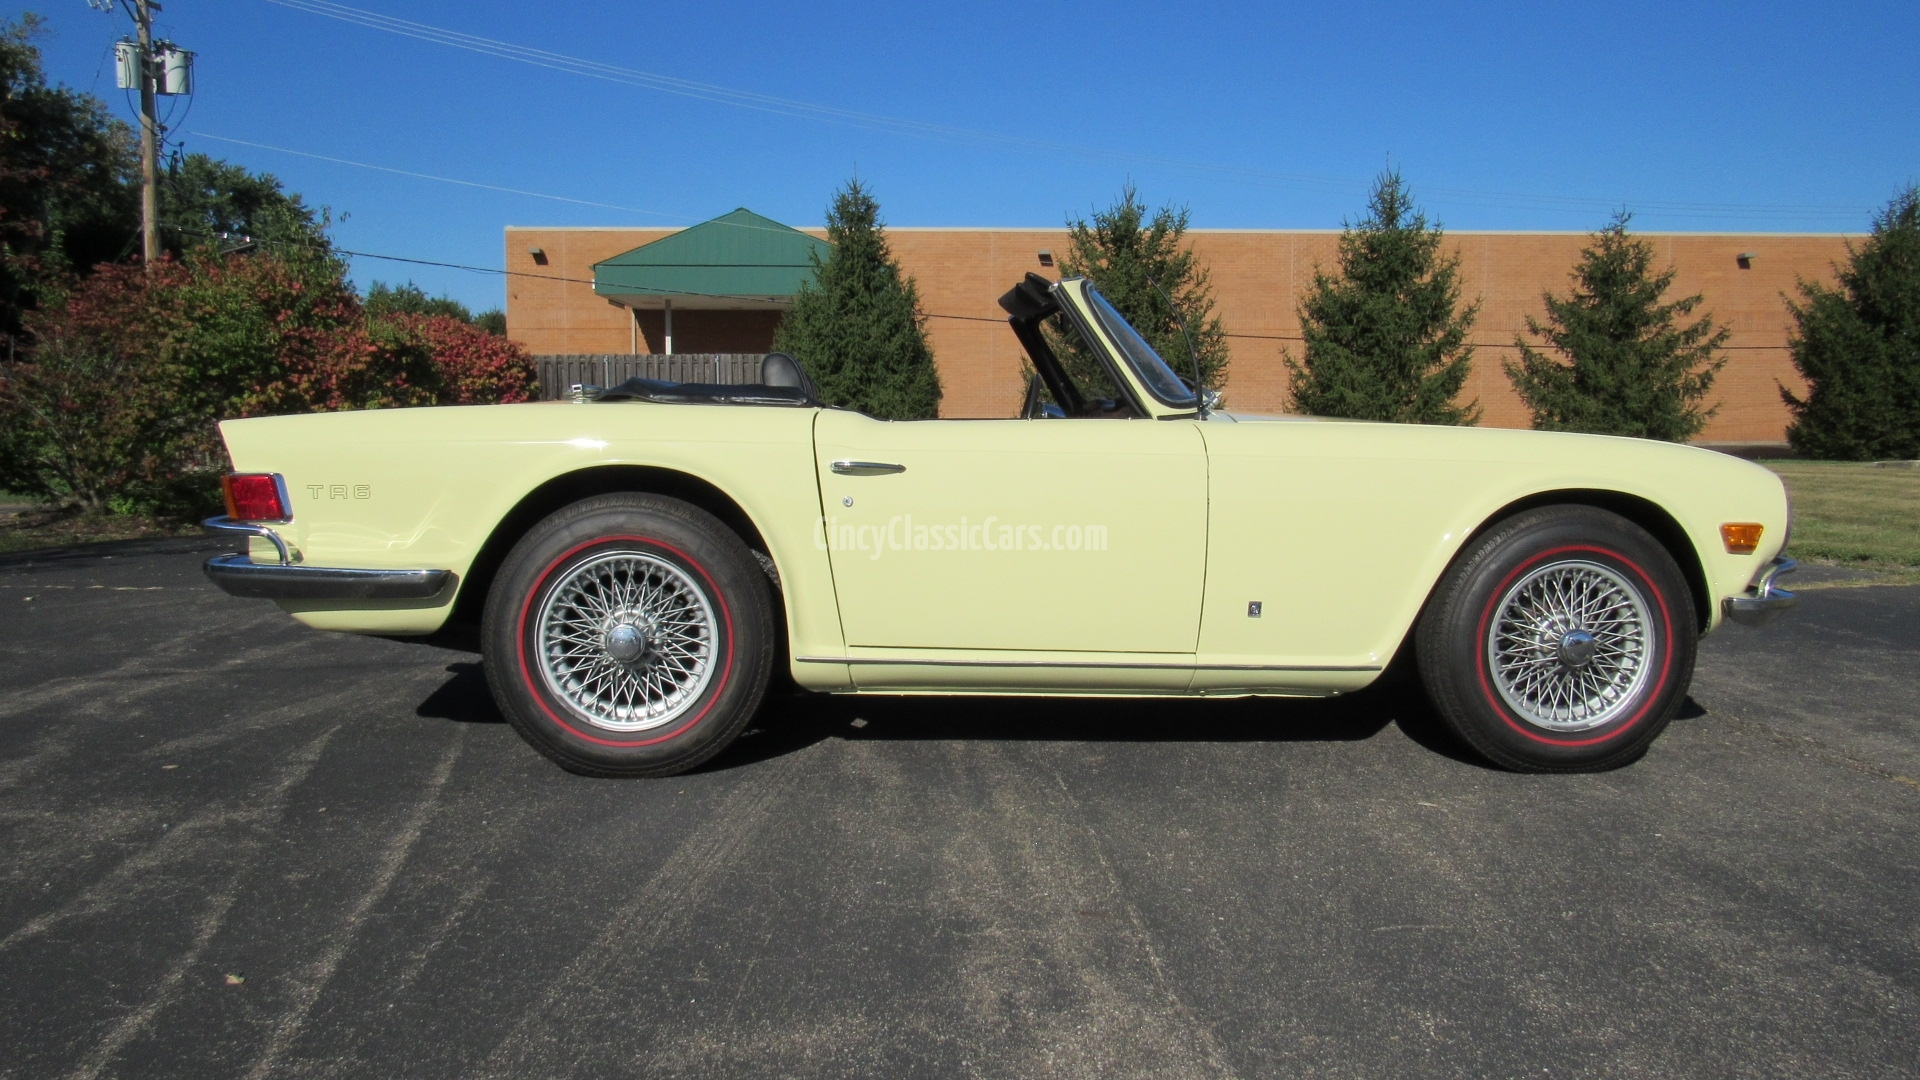 1971 Triumph TR6, Restored, 4 Speed, SOLD! | Cincy Classic Cars